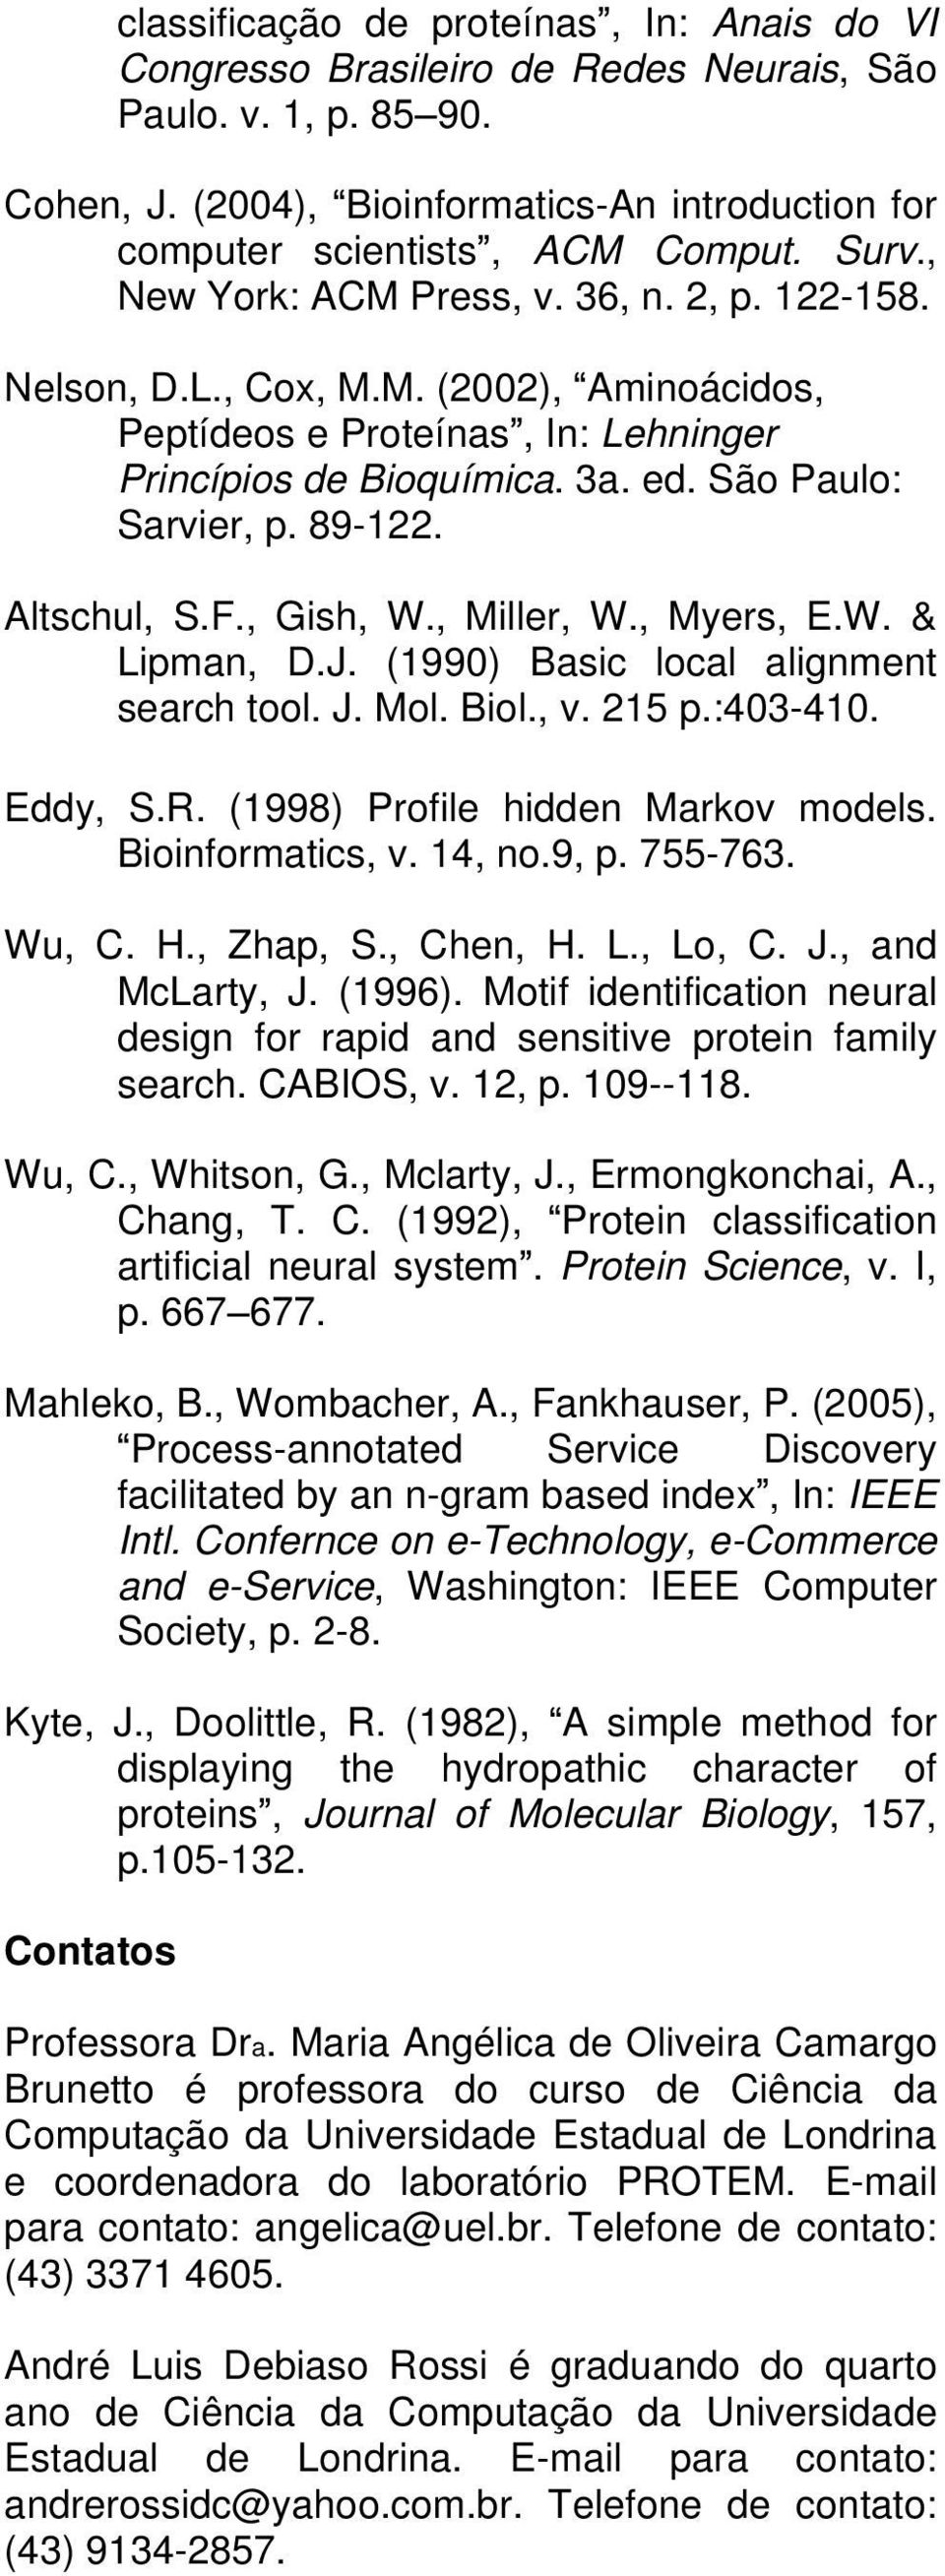 Altschul, S.F., Gish, W., Miller, W., Myers, E.W. & Lipman, D.J. (1990) Basic local alignment search tool. J. Mol. Biol., v. 215 p.:403-410. Eddy, S.R. (1998) Profile hidden Markov models.